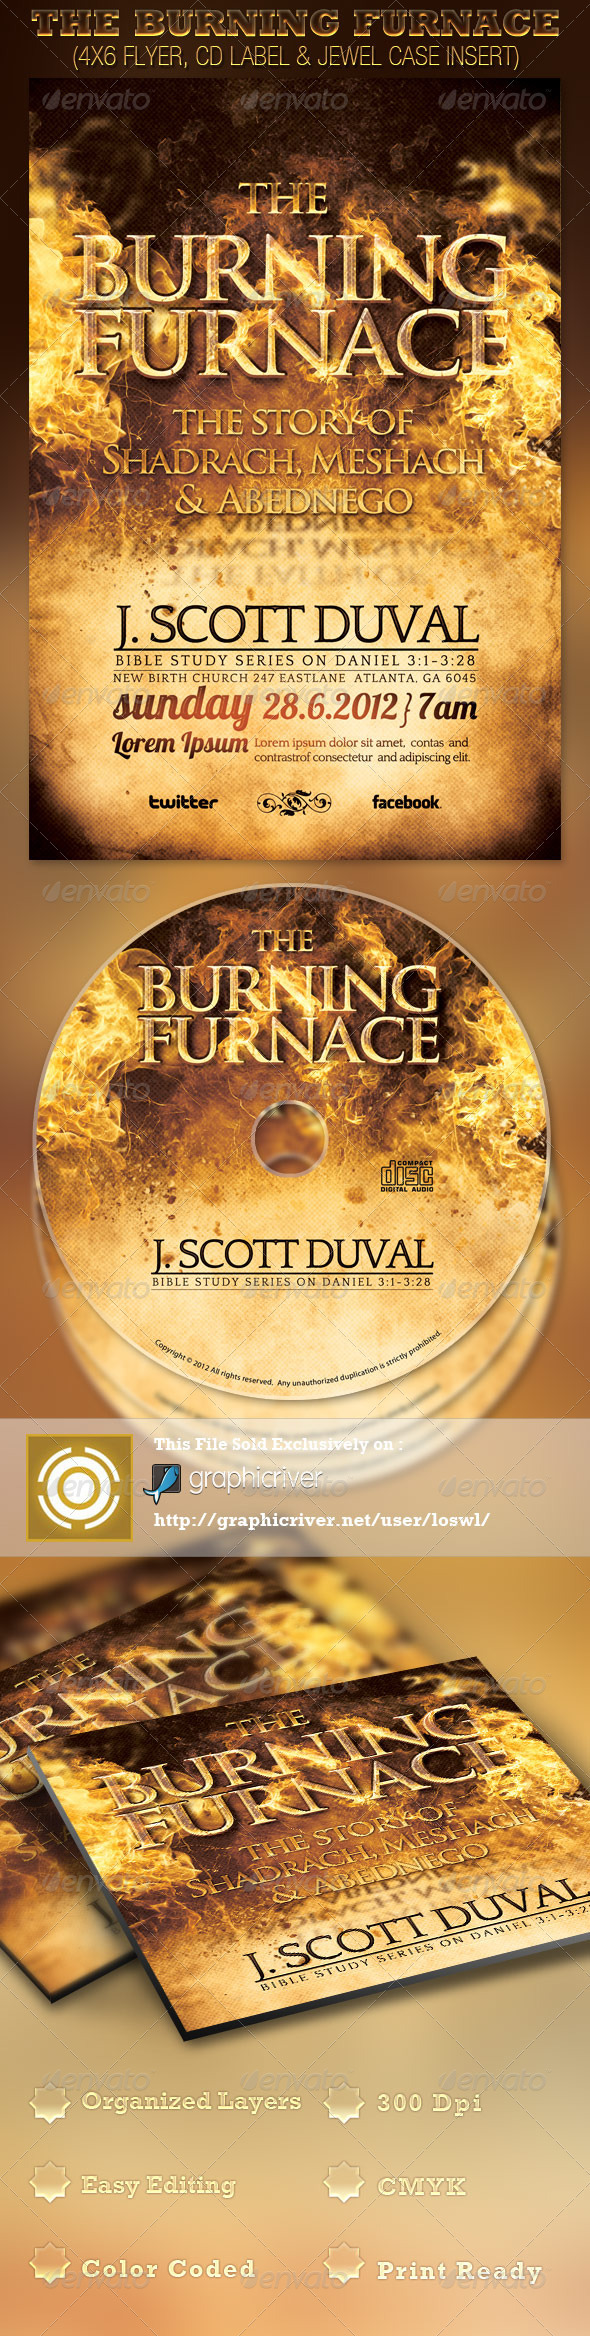 GraphicRiver The Burning Furnace Church Flyer and CD Template 2544959